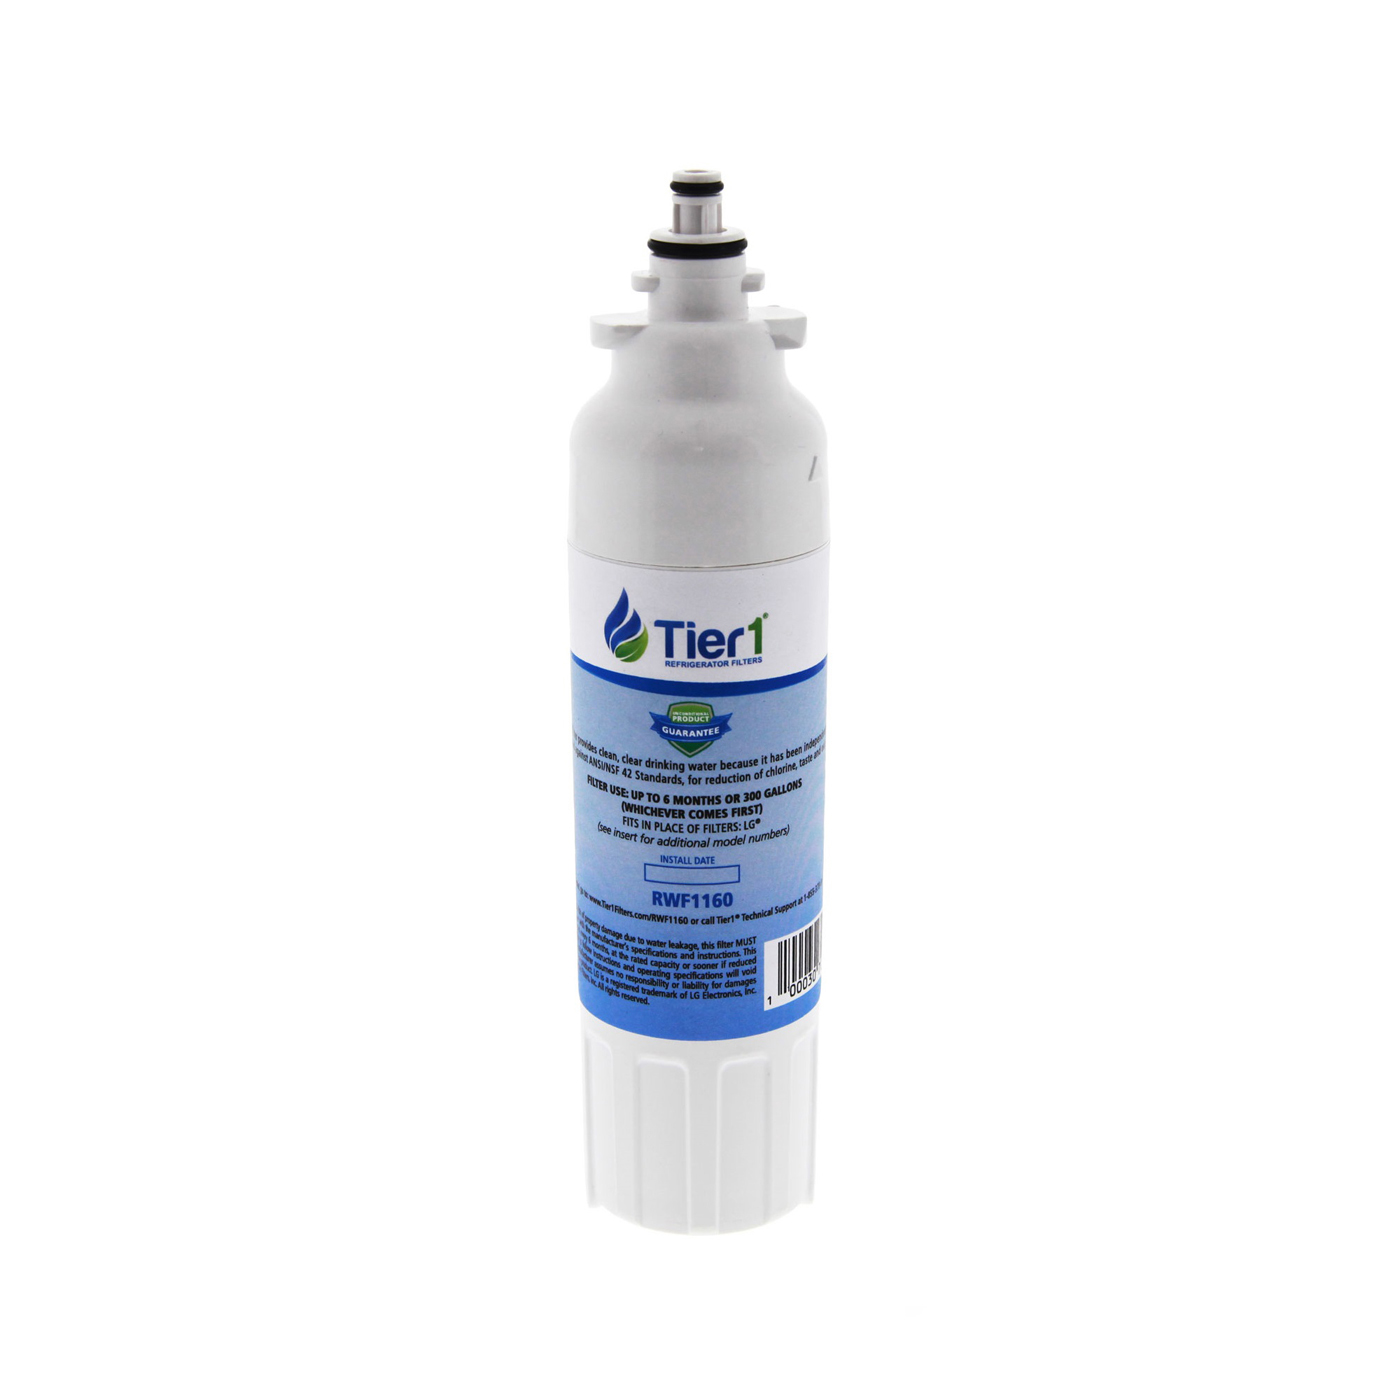 LG LT800P Comparable Refrigerator Water Filter Replacement By Tier1 TIER1-RWF1160